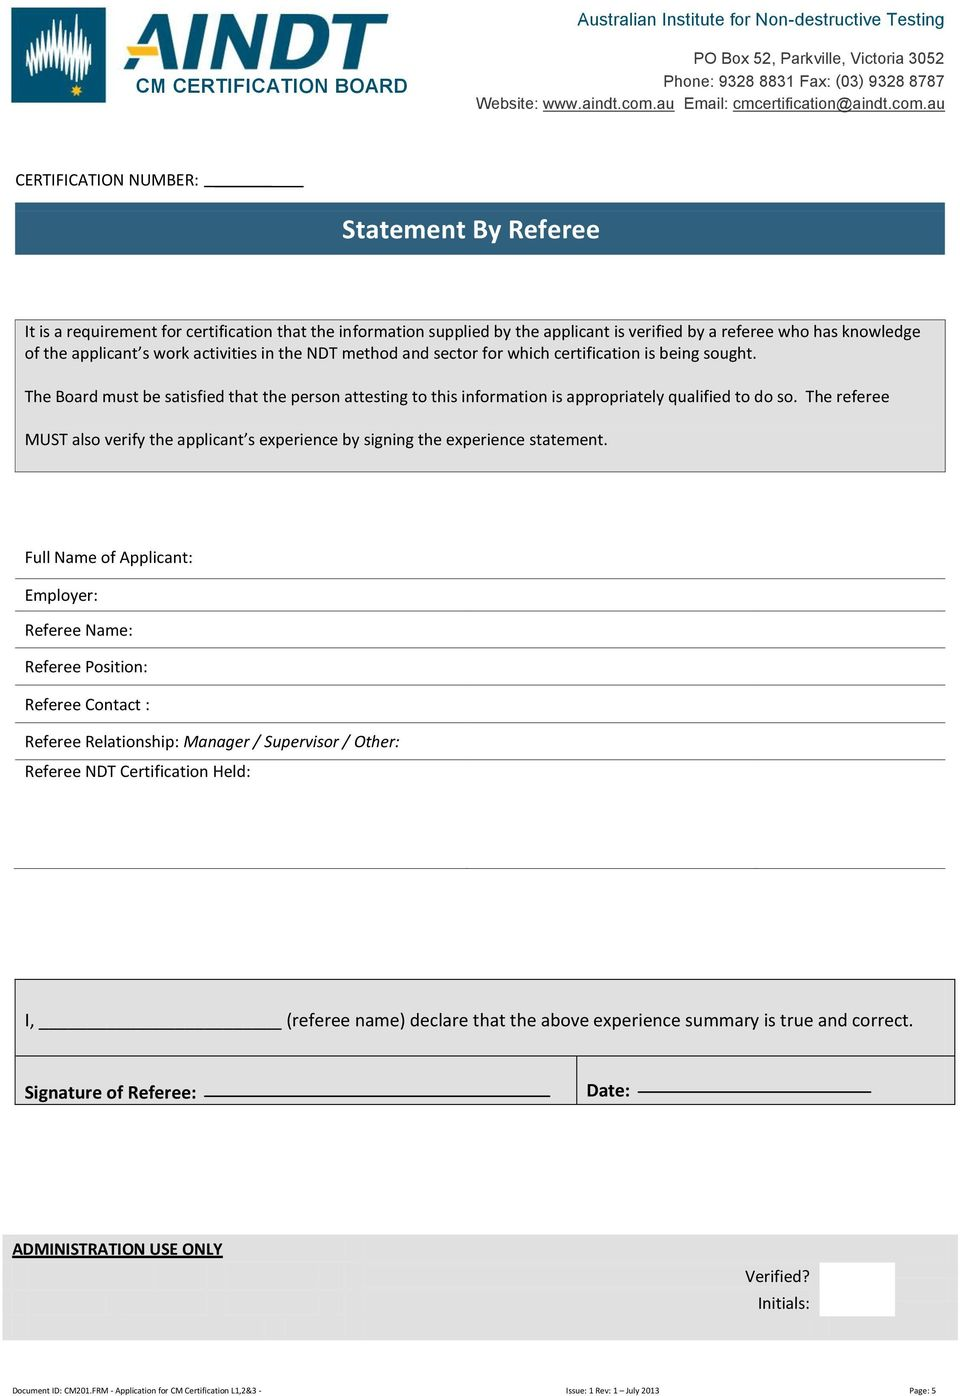 The referee MUST also verify the applicant s experience by signing the experience statement.